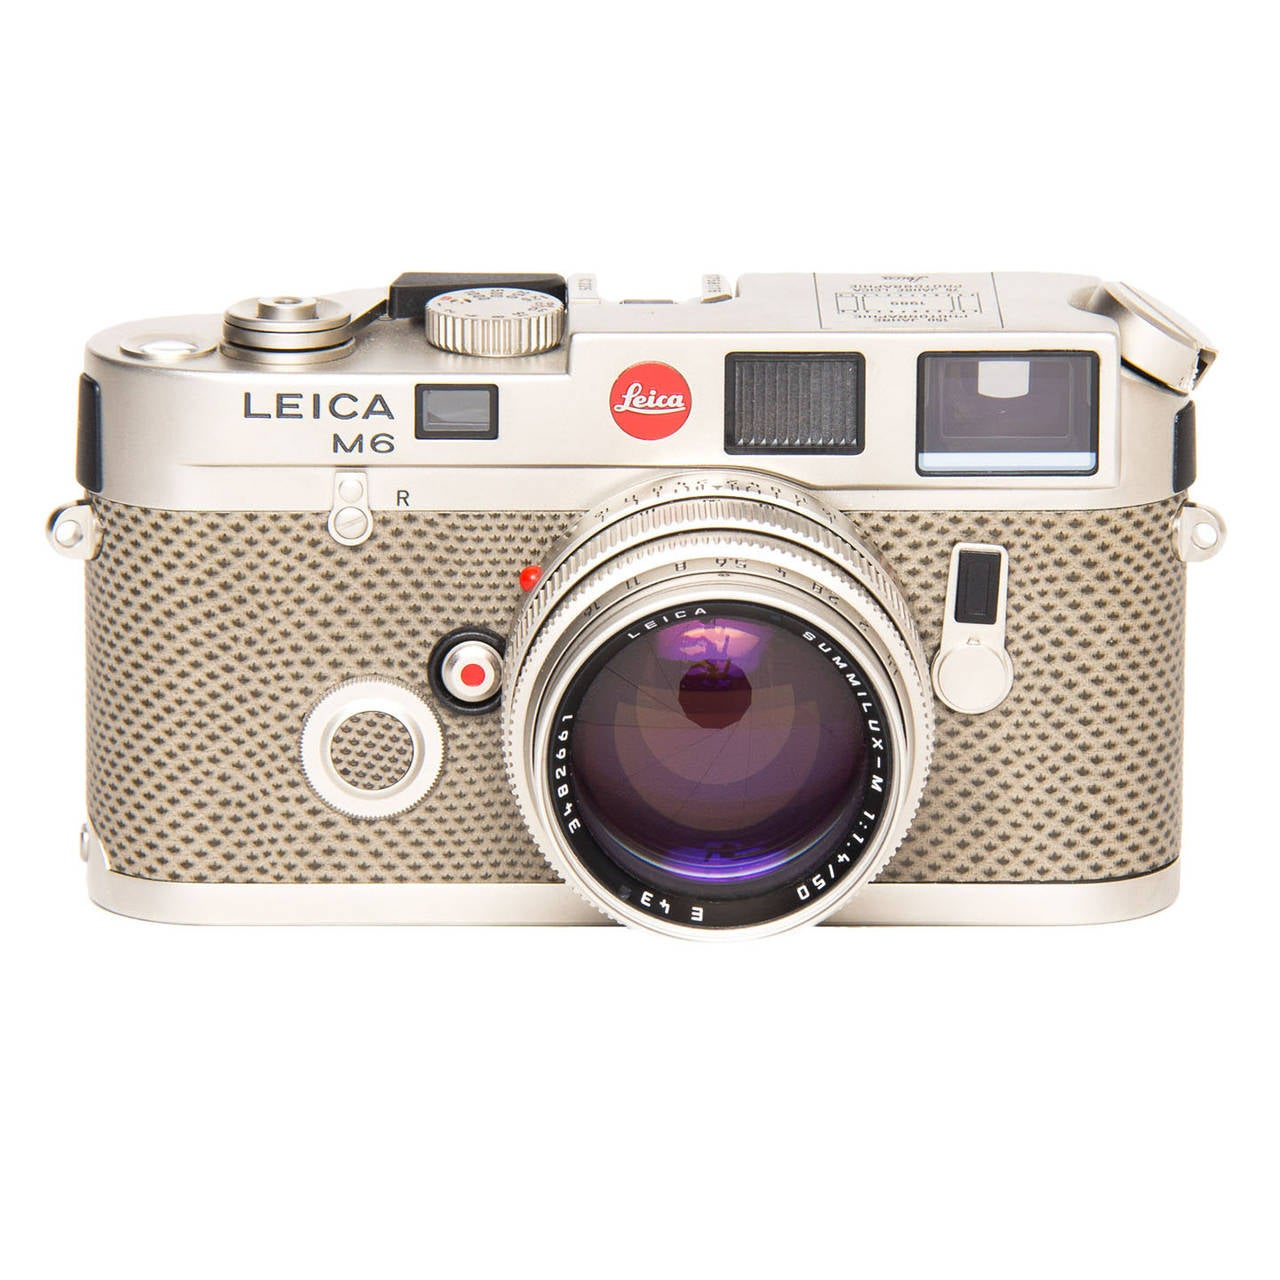 Leica Camera Platinum and Karung Skin - Special Edition M6 T For ...